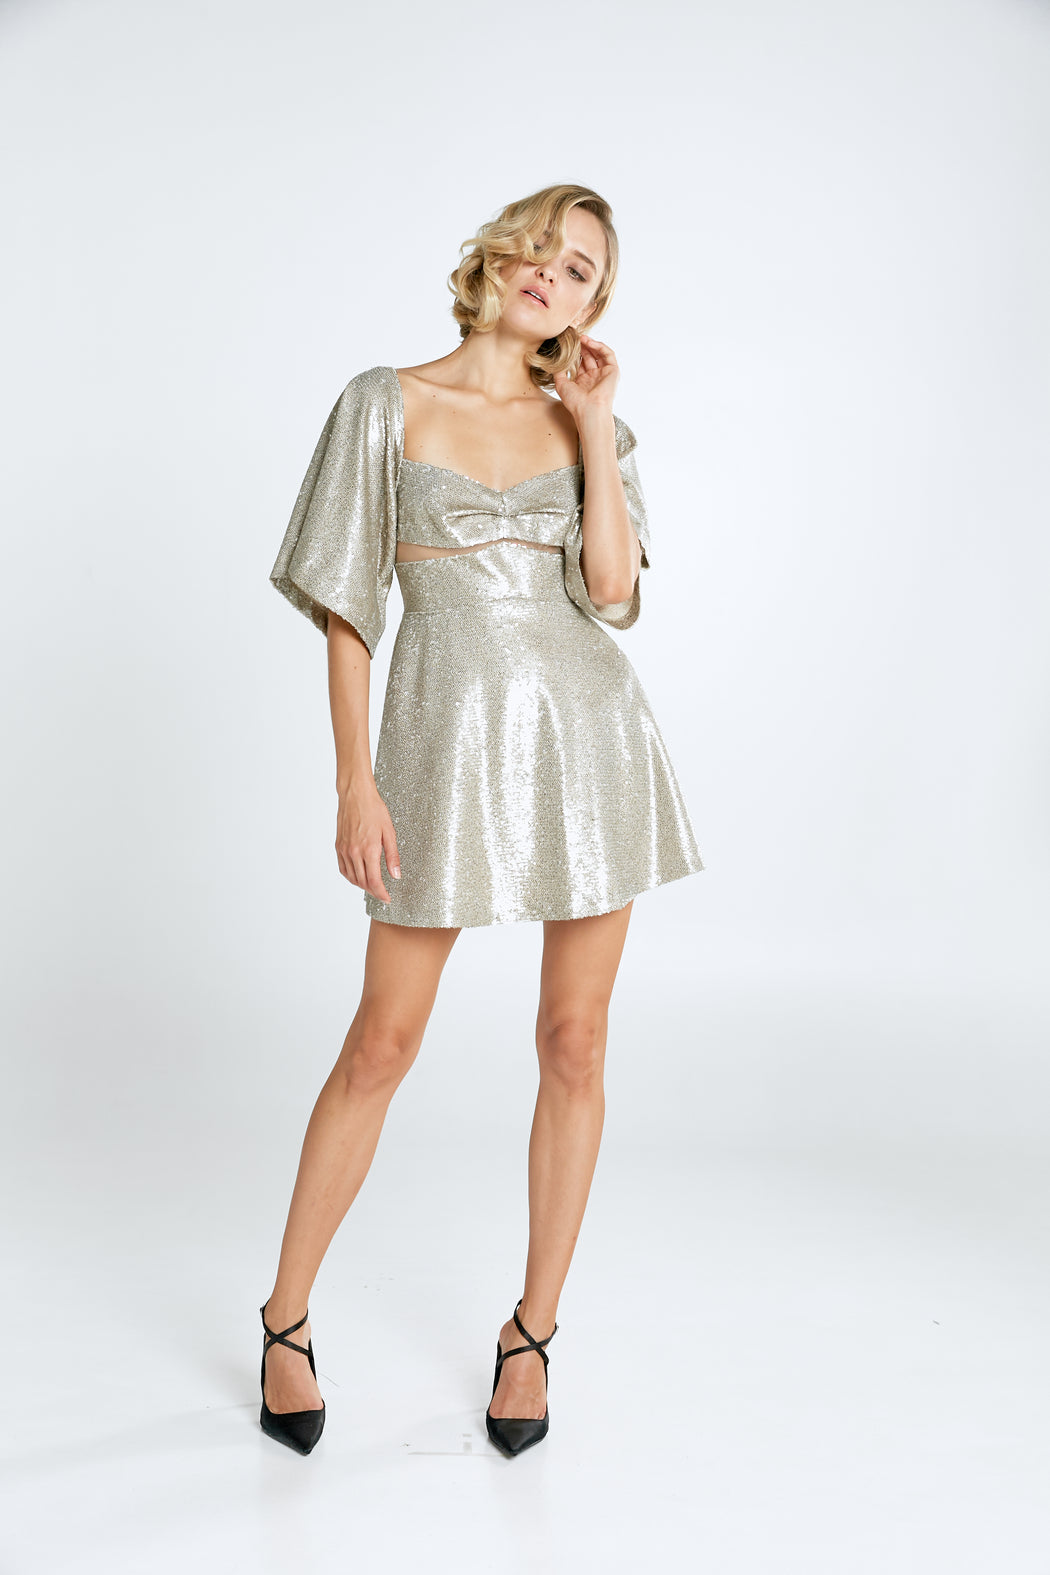 Farrah Silver Sequin Mini Dress - SAU LEE